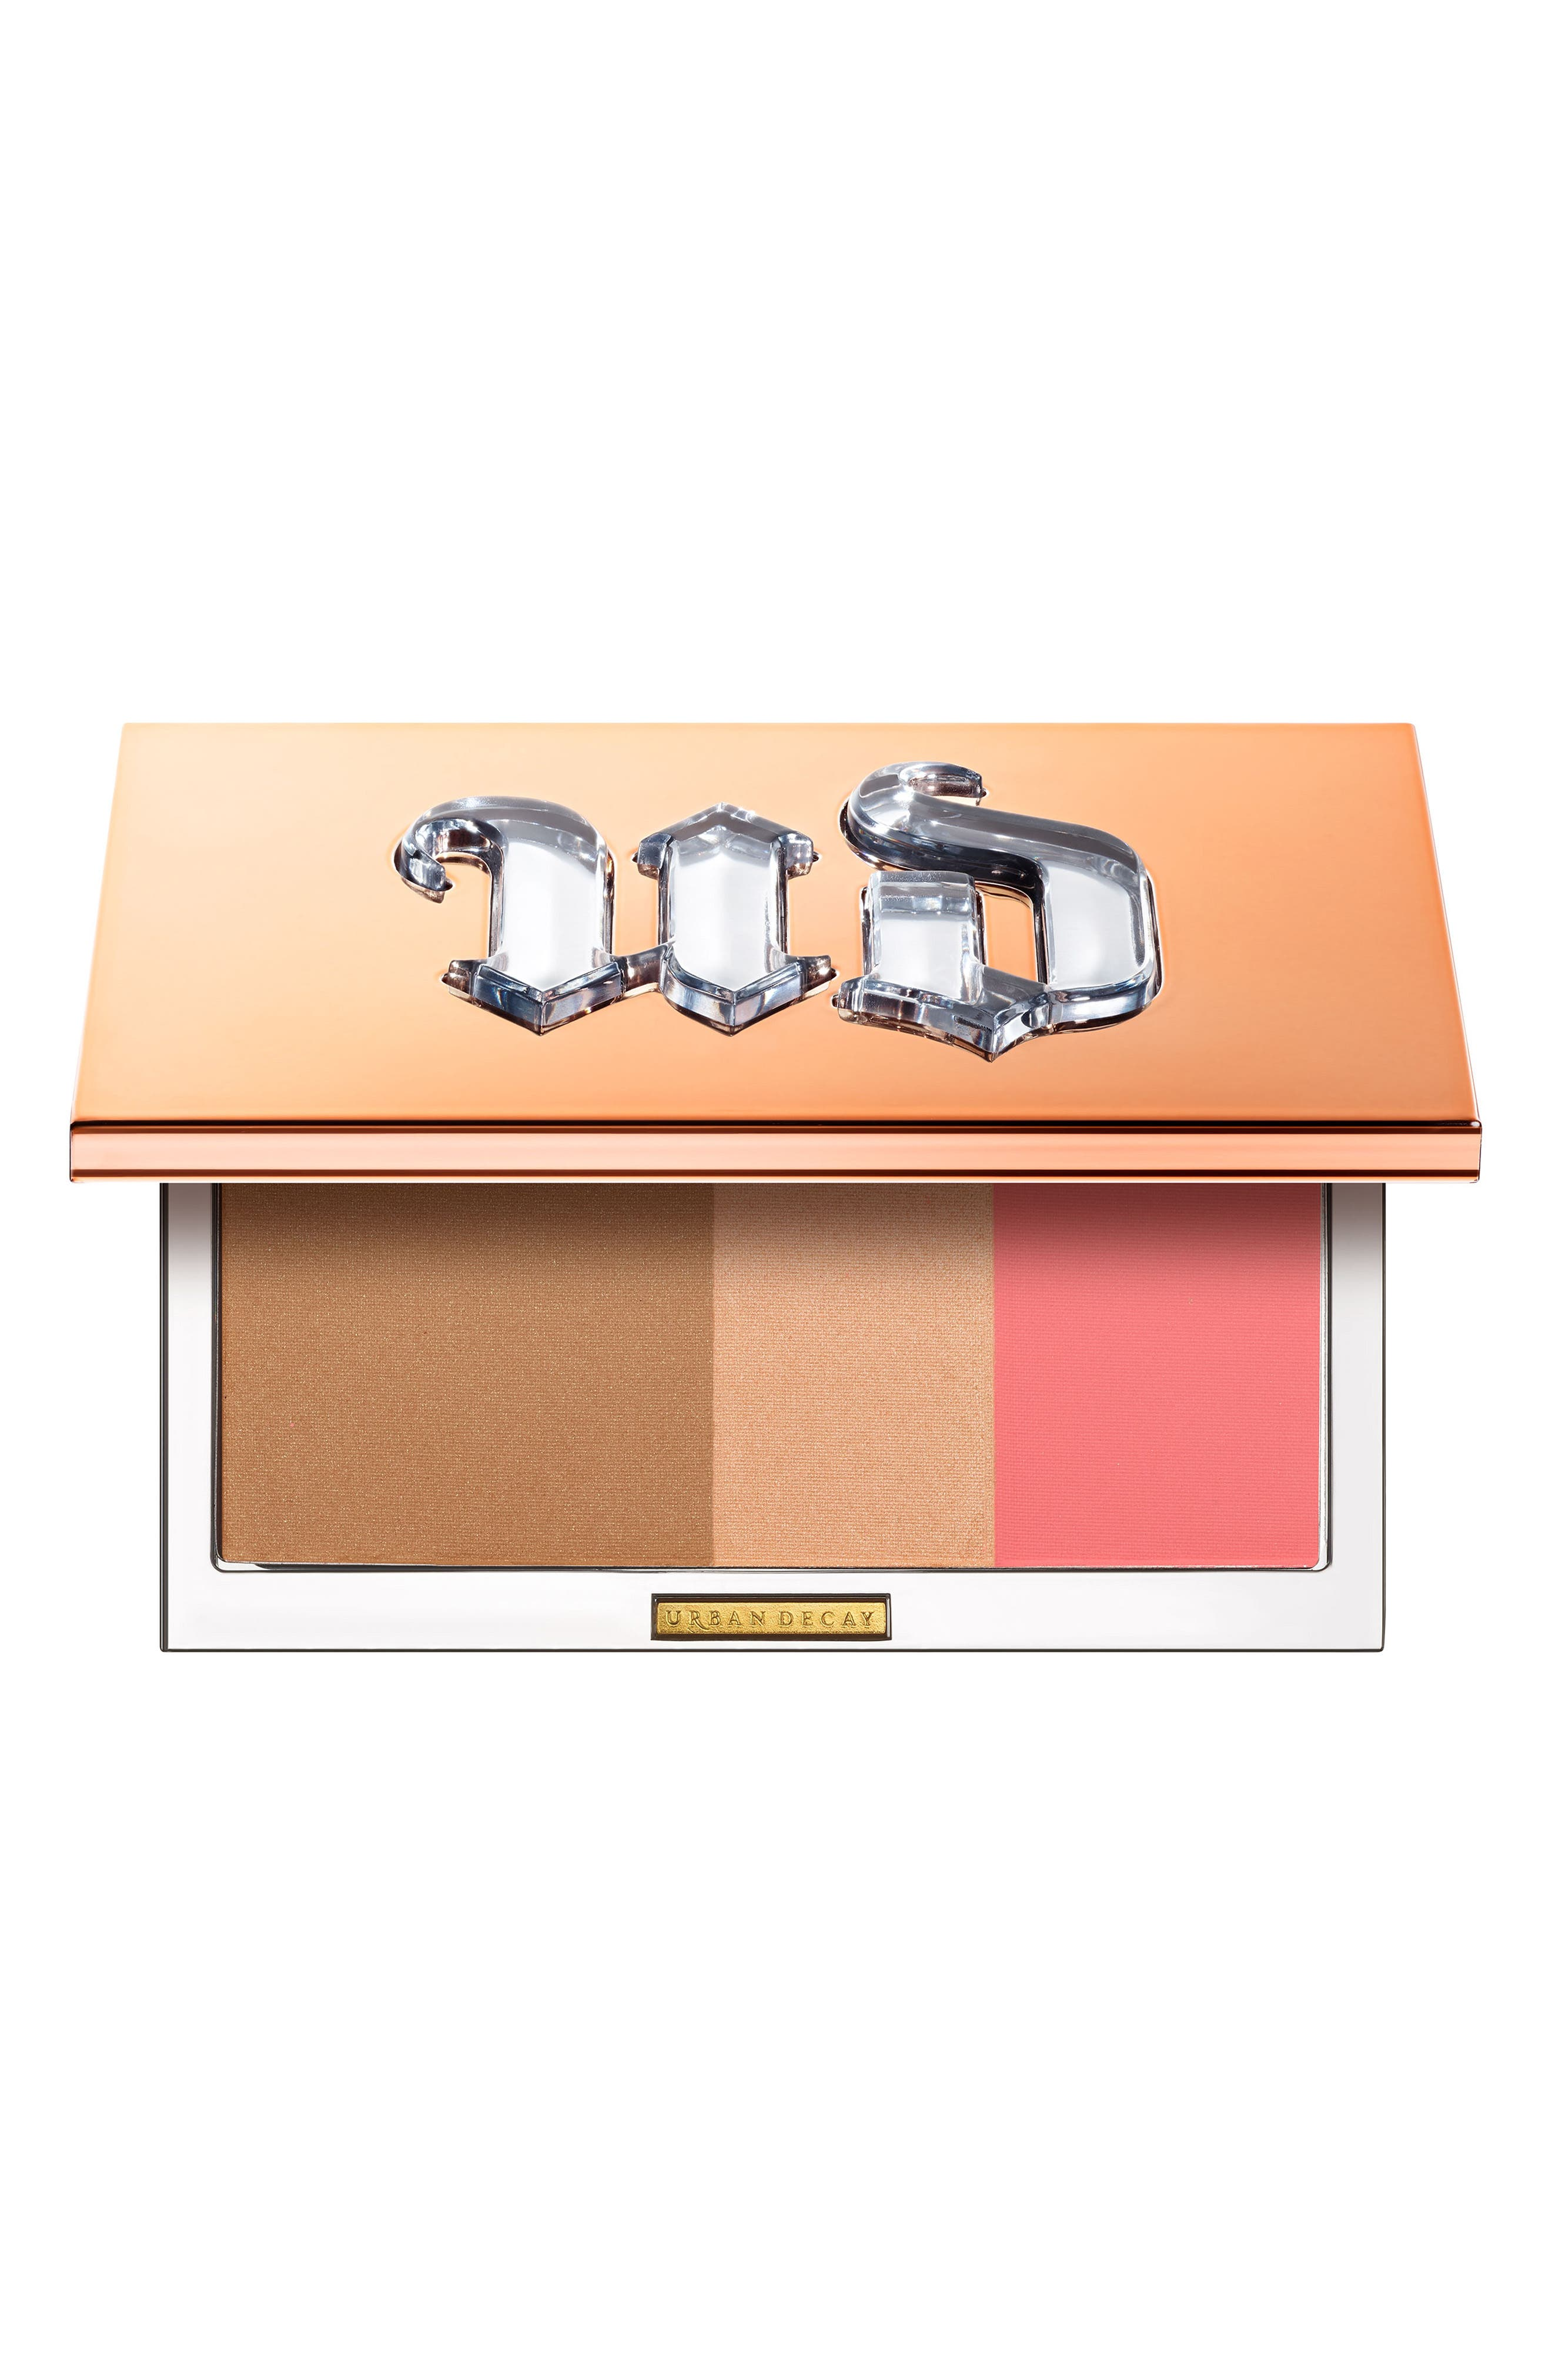 What it is: A 3-in-1 blush, bronzer and highlighter palette with a new and improved formula that\\\'s creamy, lightweight and lasts up to 14 hours. What it does: The dreamy, silky powder formula is blendable and buildable, without getting streaky or cakey. Infused with moringa seed oil, it contains antioxidant and anti-pollution properties that help balance and protect skin. Use the bronzer, highlighter and blush solo or combined for allover glow